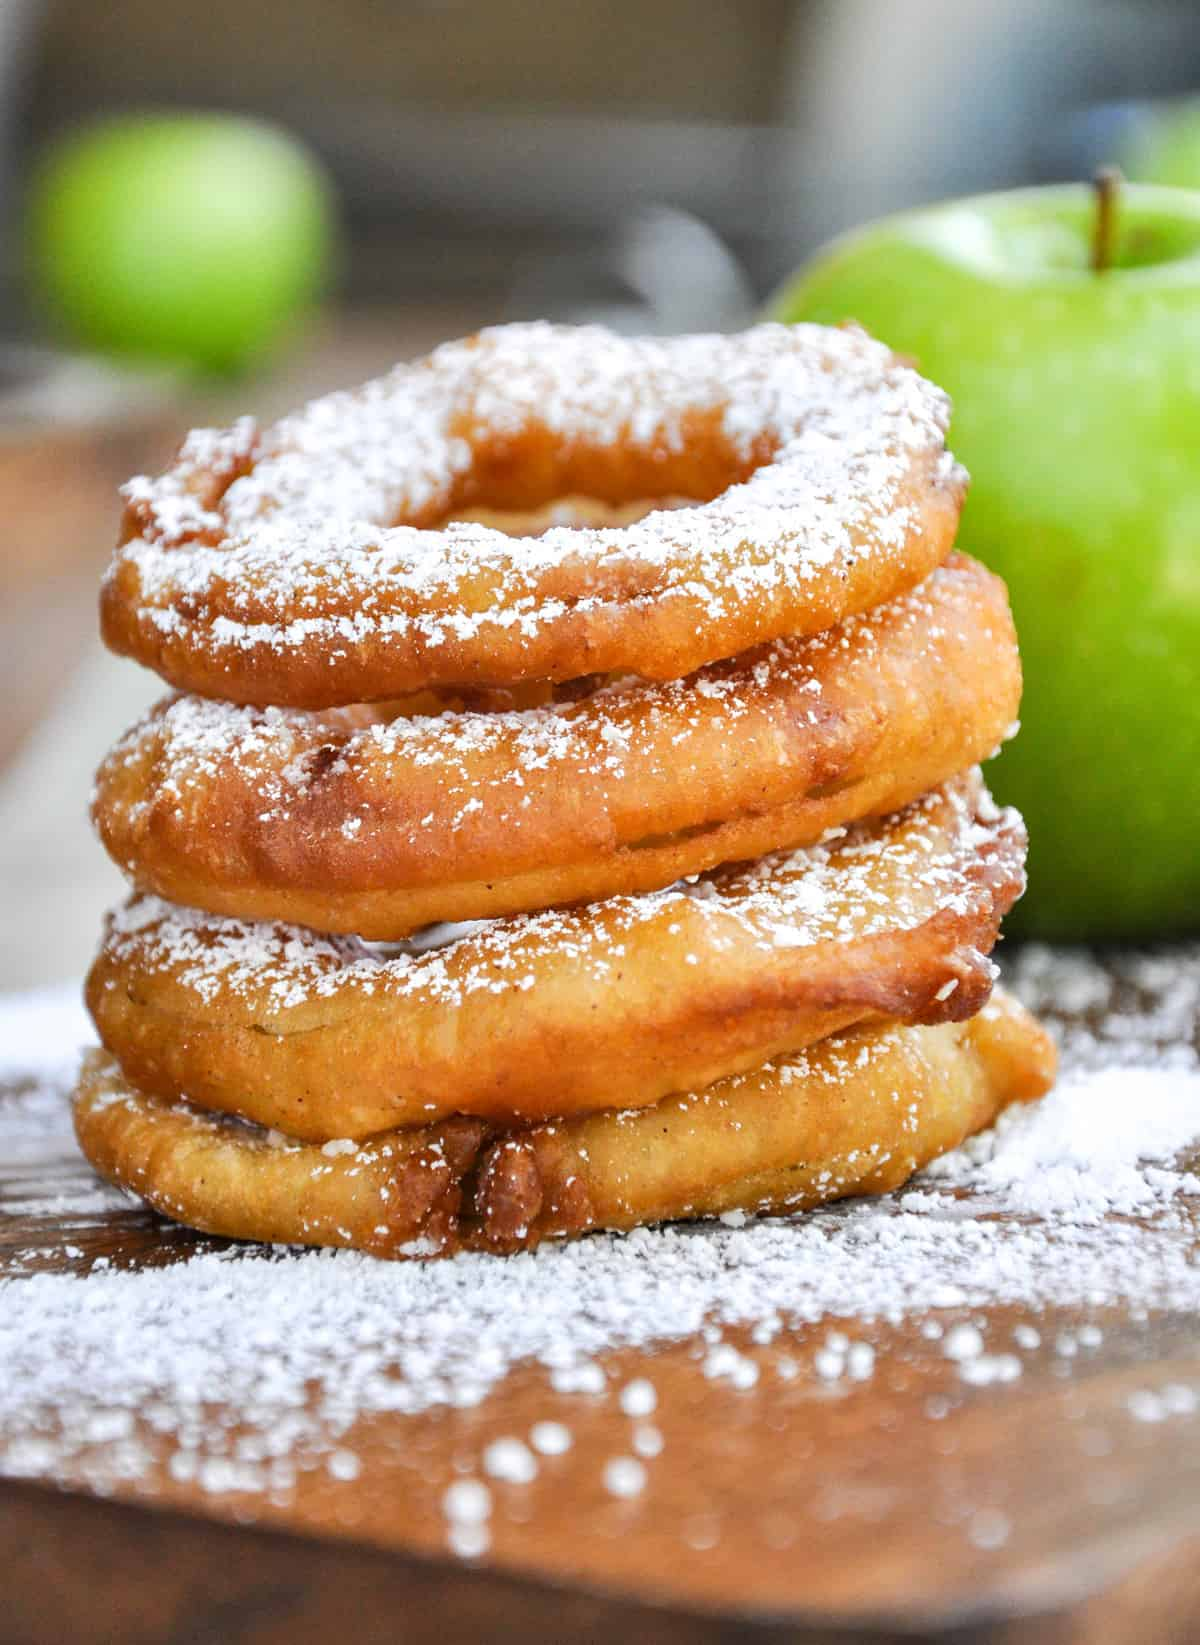 Noble Fried Apple Rings Dusted Powdered Like An Apple Party Inyour Mouth Fried Apple Rings California Grown Fried Apples Recipes Paula Deen Luck S Fried Apples Recipes nice food Fried Apples Recipe